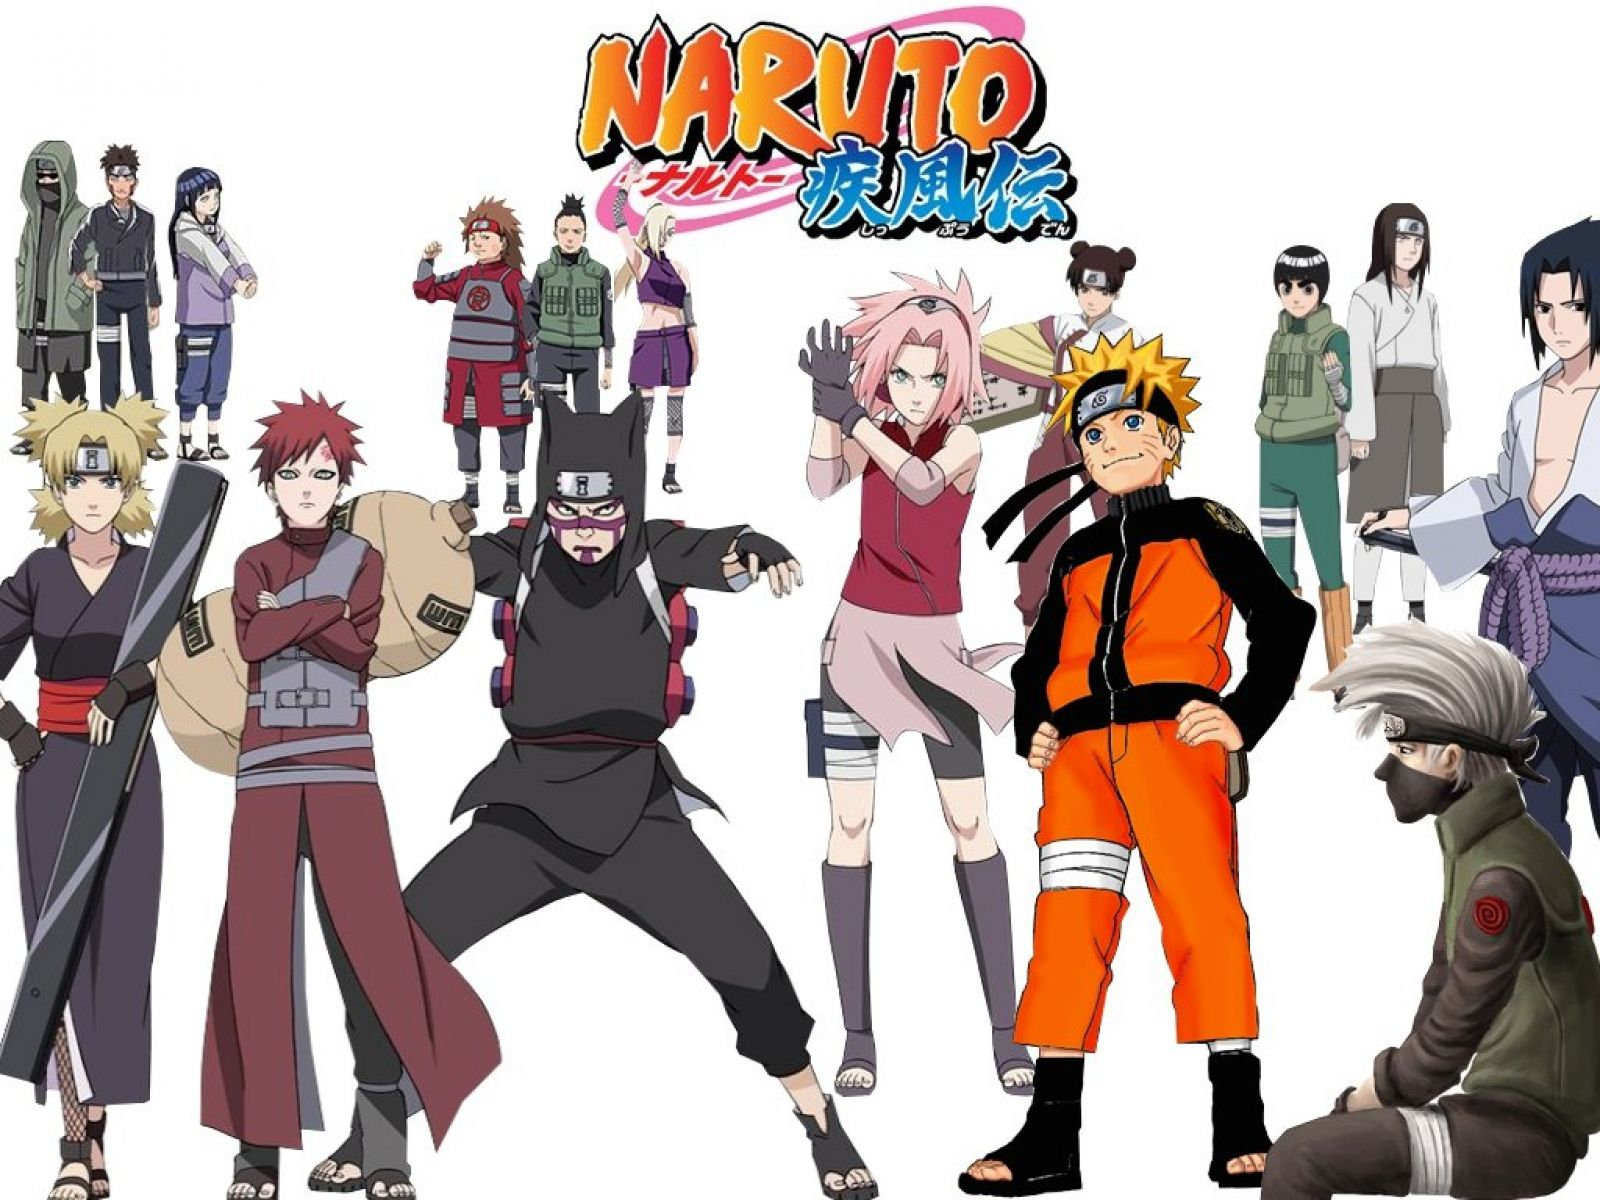 Naruto Characters In Real World Background Wallpaper: ... Wallpaper Backgrounds